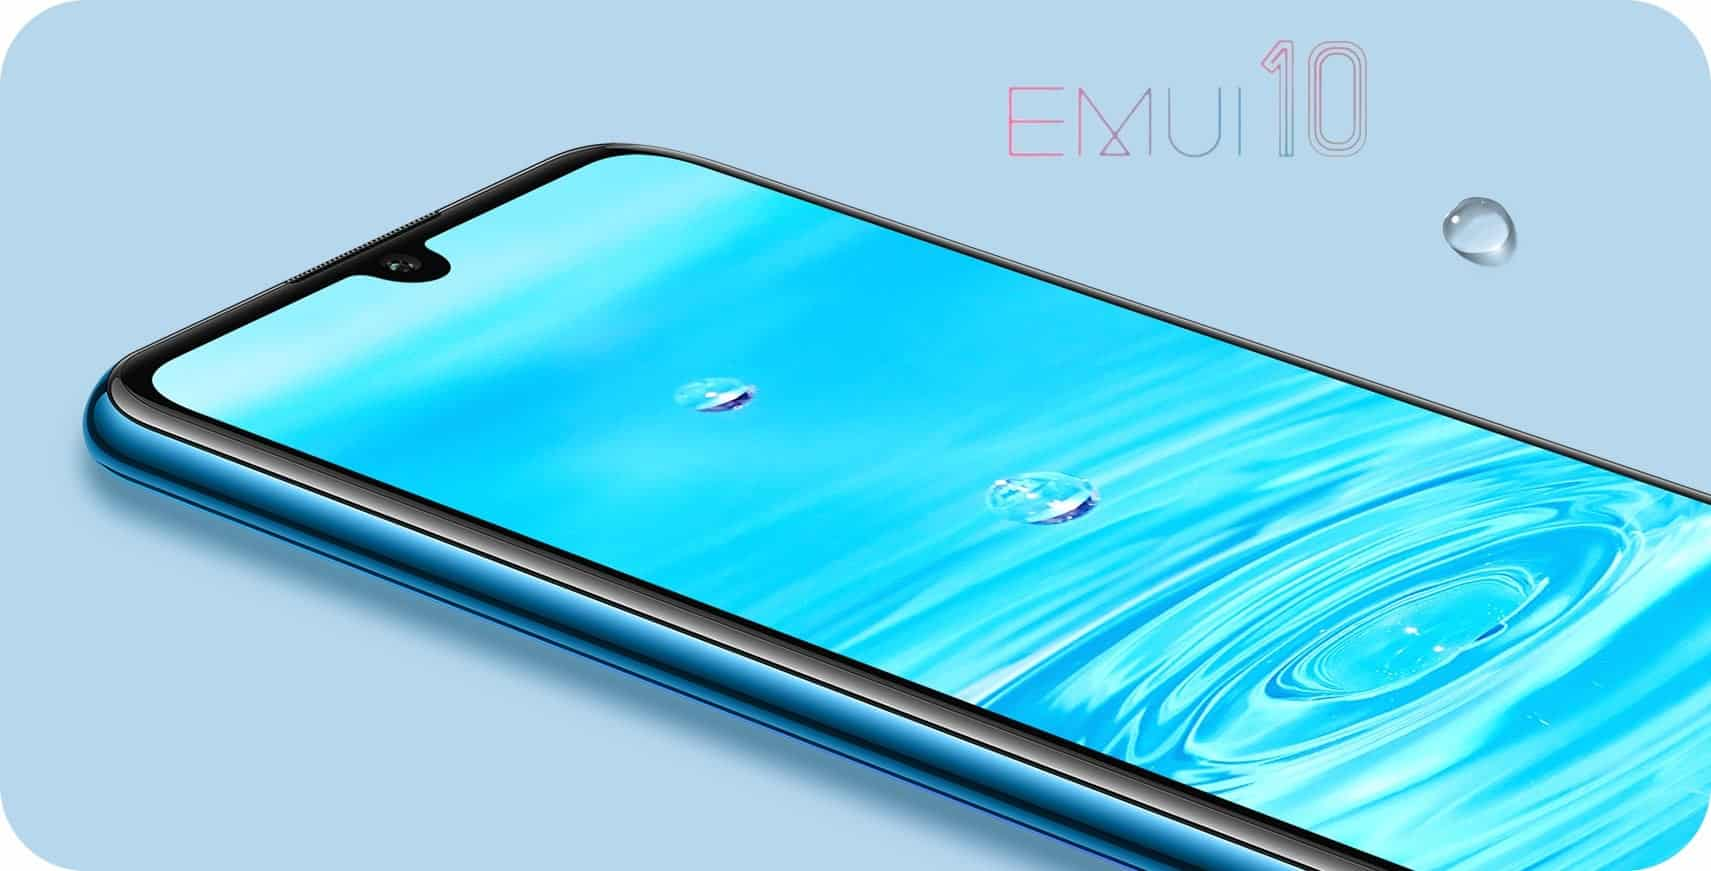 Huawei P30 Lite EMUI 10 update now rolling out - Gizchina.com